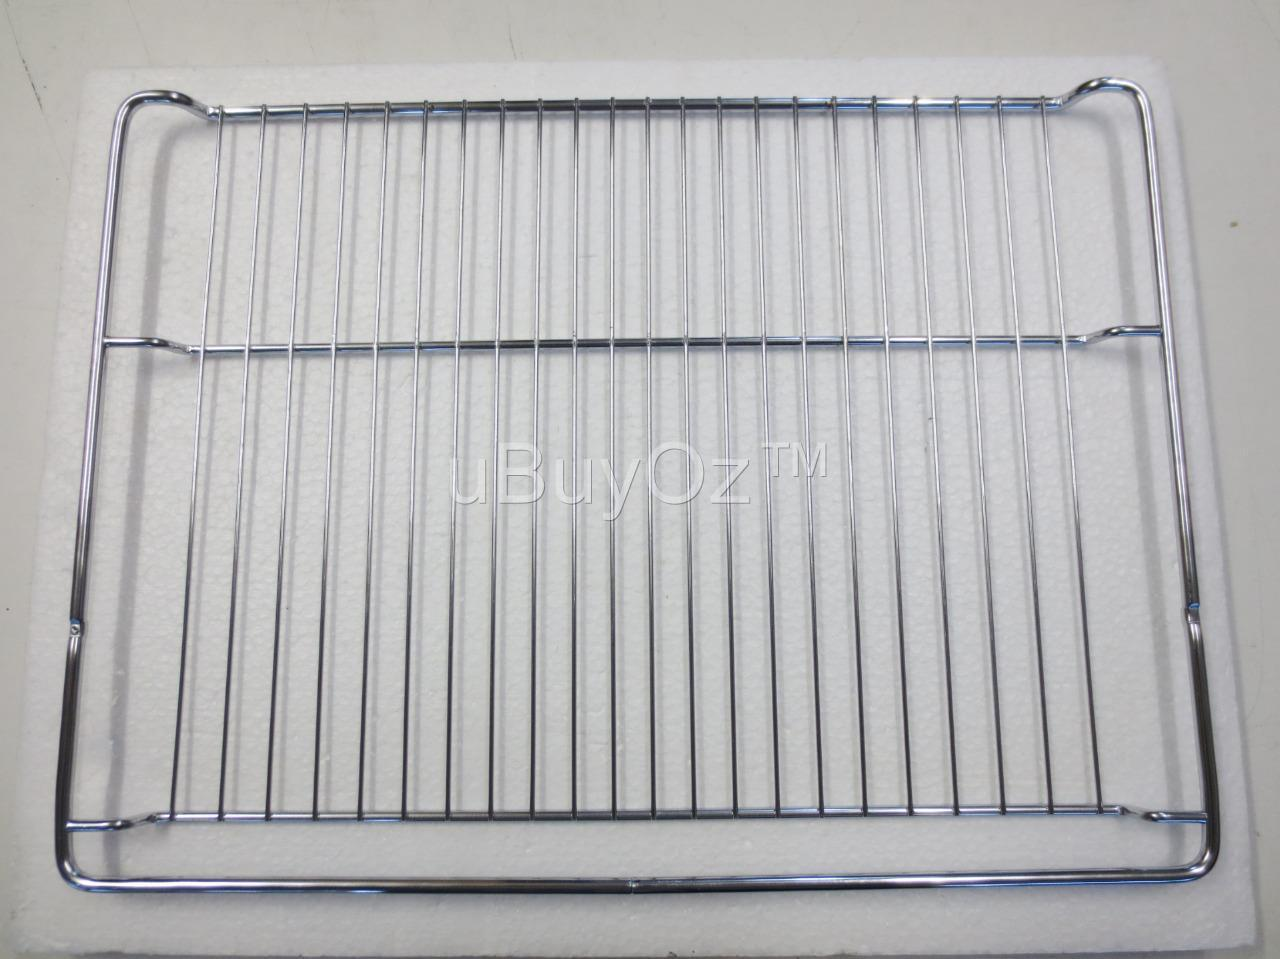 neff oven element wiring diagram for trailers bosch wire rack 00742283 call ubuyoz on 0418311808